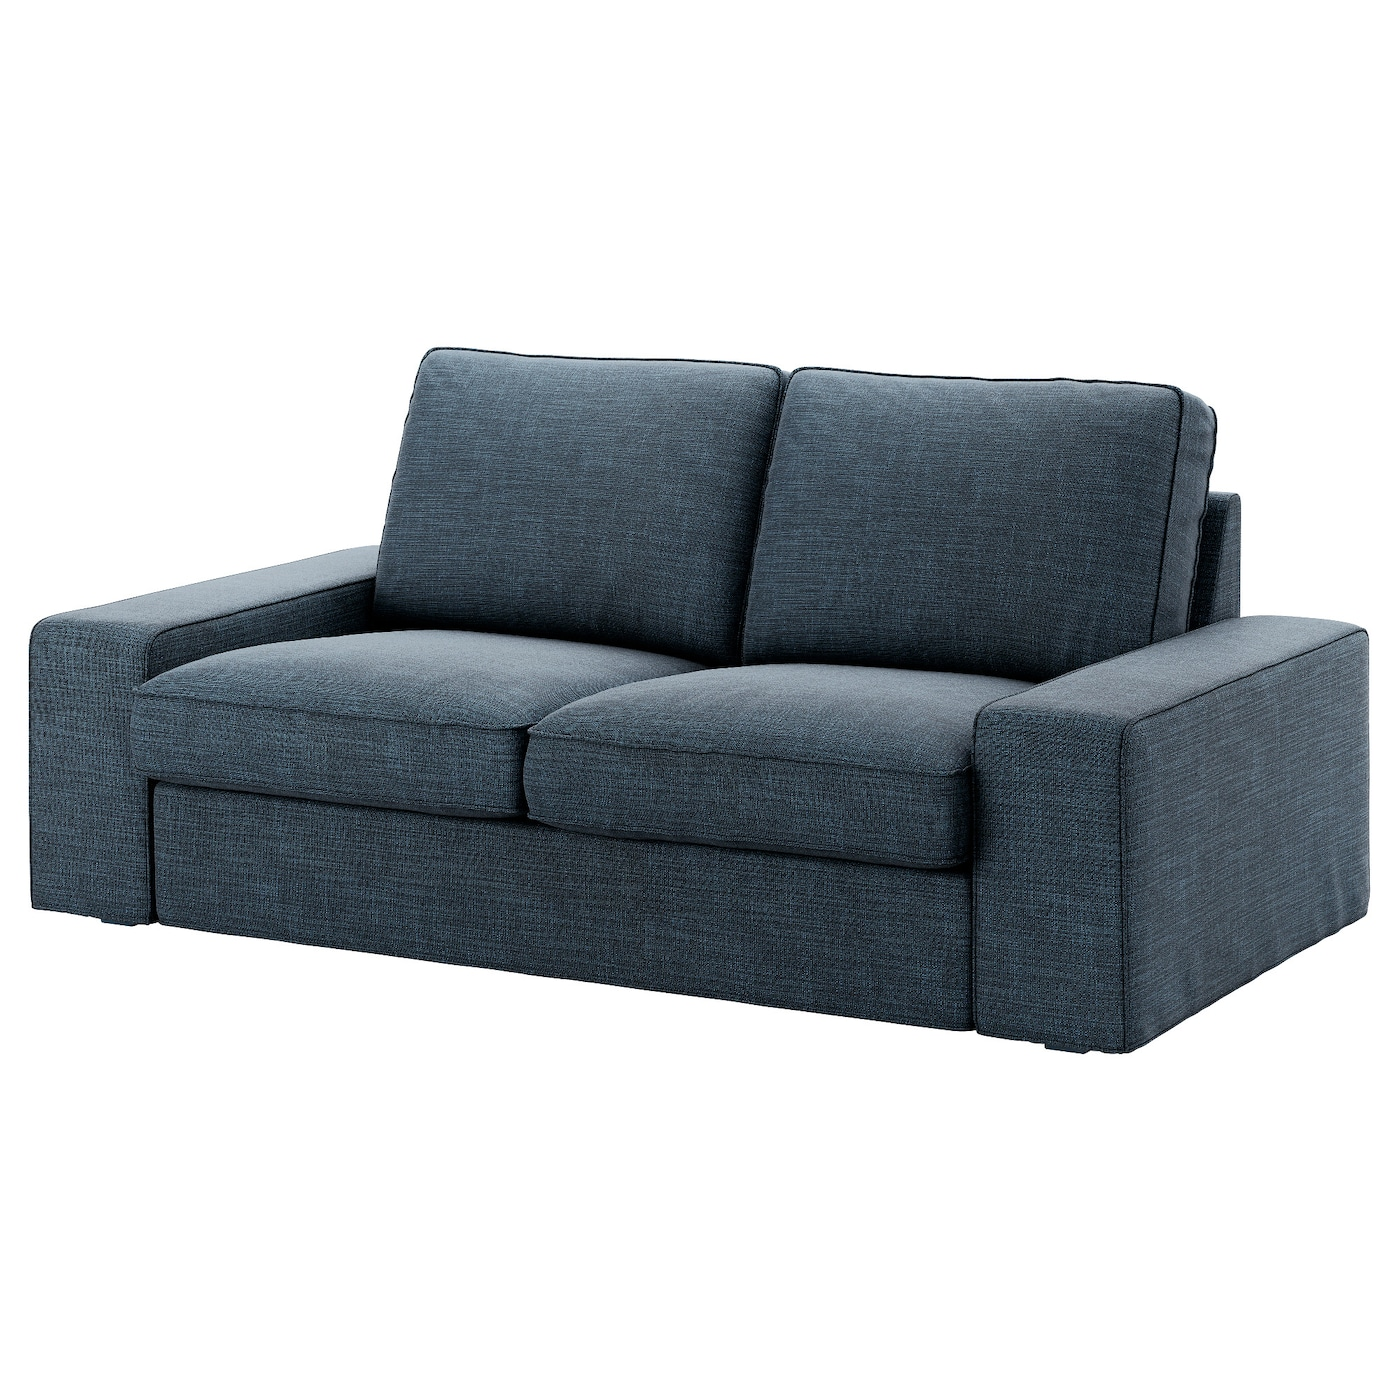 kivik two seat sofa hillared dark blue ikea. Black Bedroom Furniture Sets. Home Design Ideas